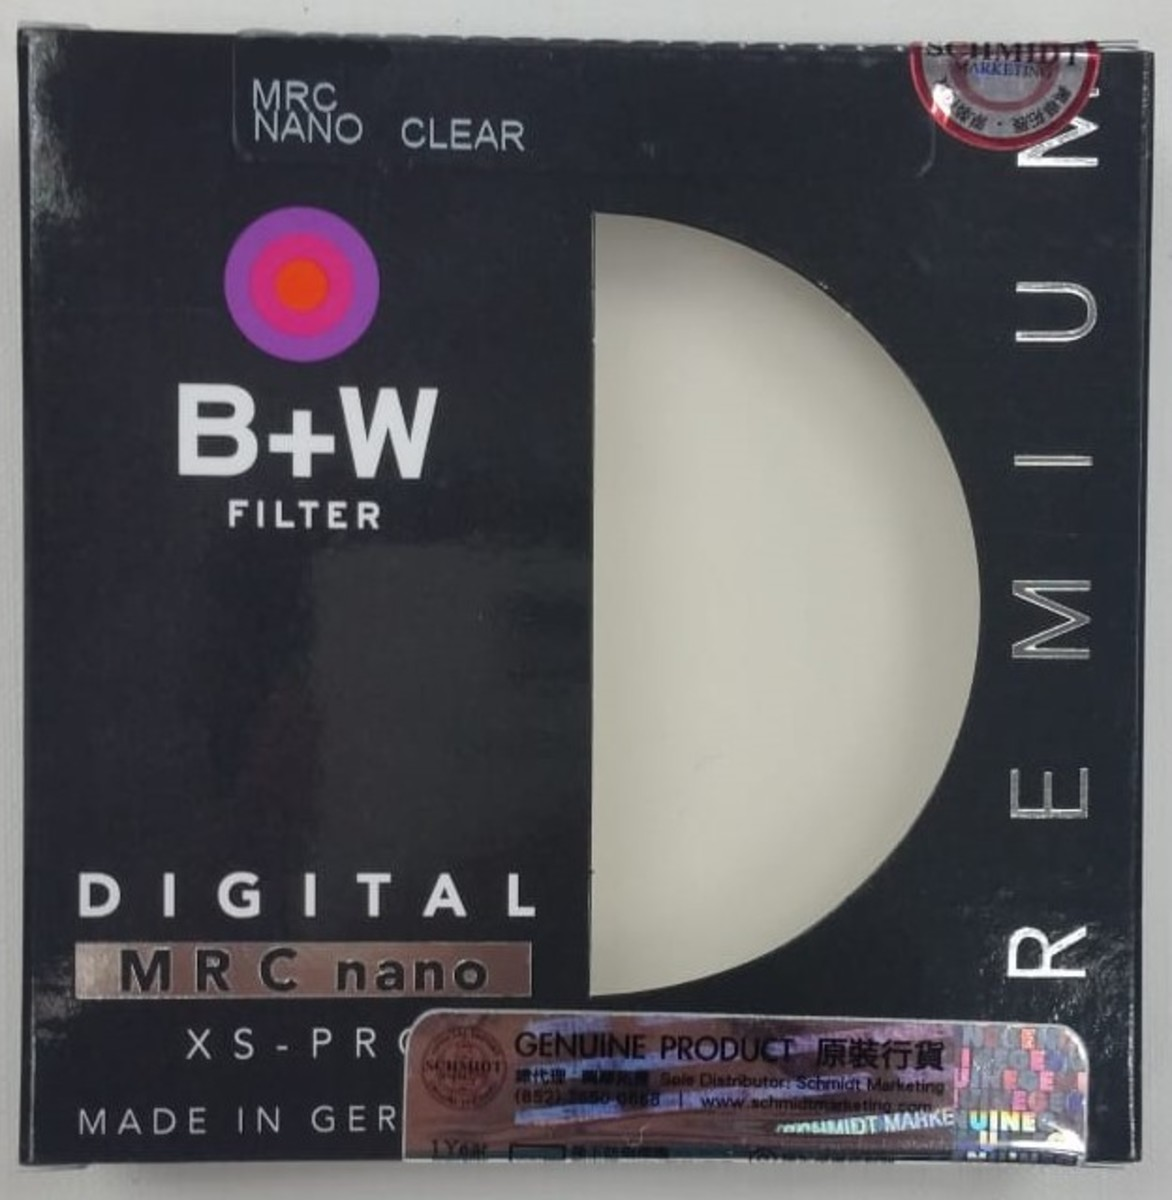 62mm XS-Pro Digital 007 Clear filter MRC nano Protector頂級保護鏡